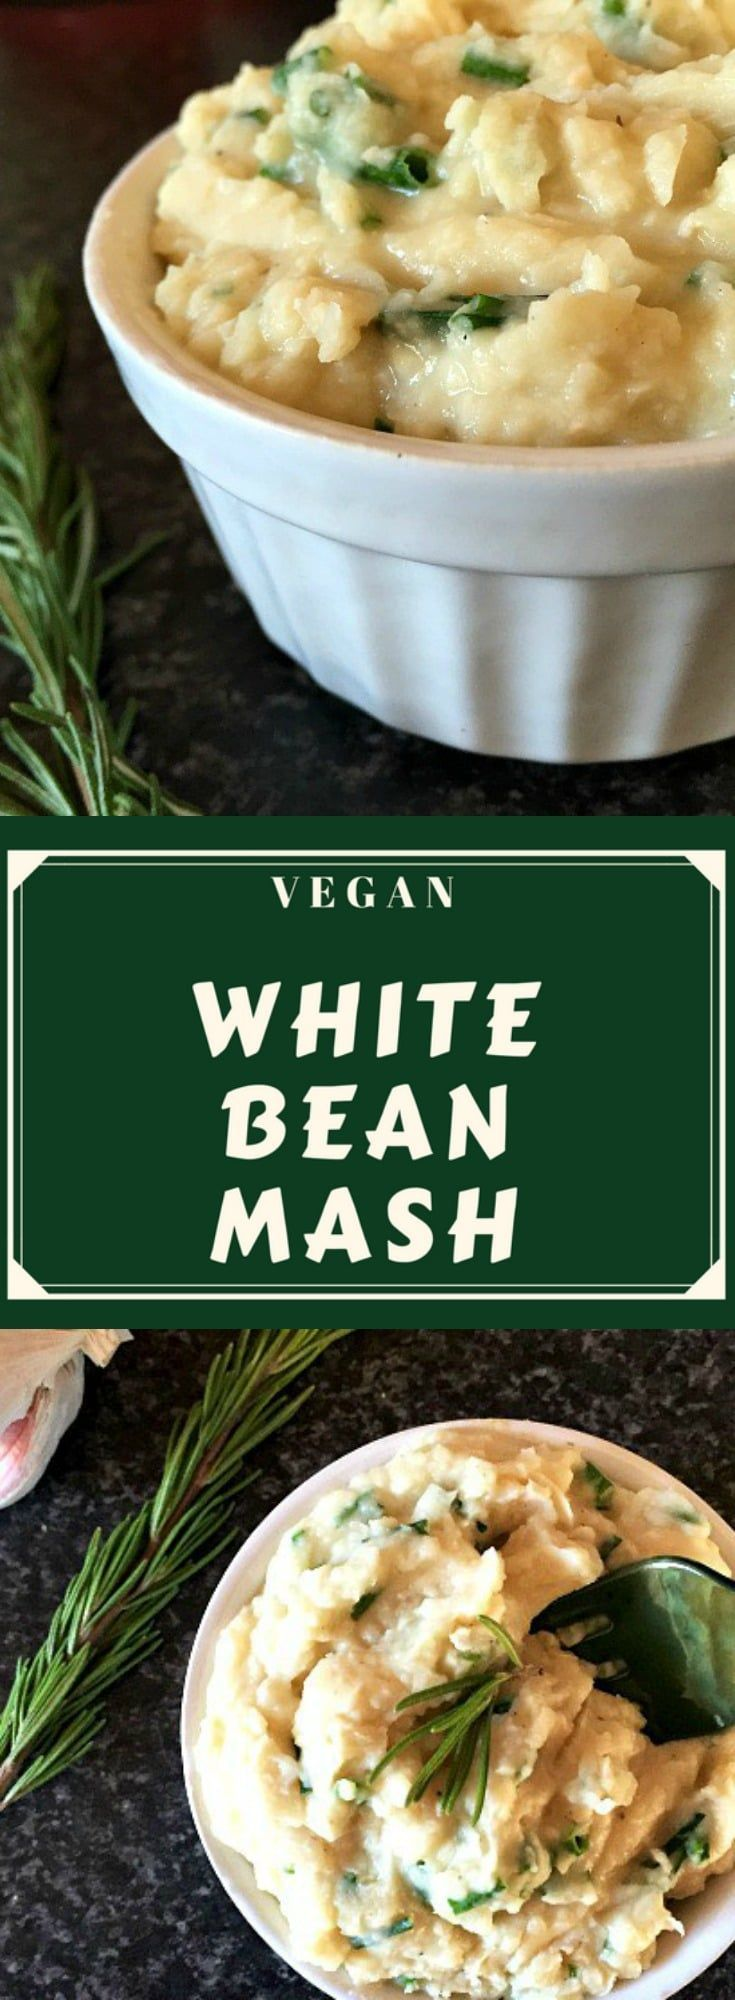 This vegan white bean mash with garlic, rosemary and chives makes a delicious side dish that is packed with protein and fibre and is low in fat. It is also a great alternative to the mashed potatoes, although, l must say, it is hard to choose between the two of them, as l like them both very much. #veganappetizers , #whitebeanmash, #beanmash, #veganrecipes